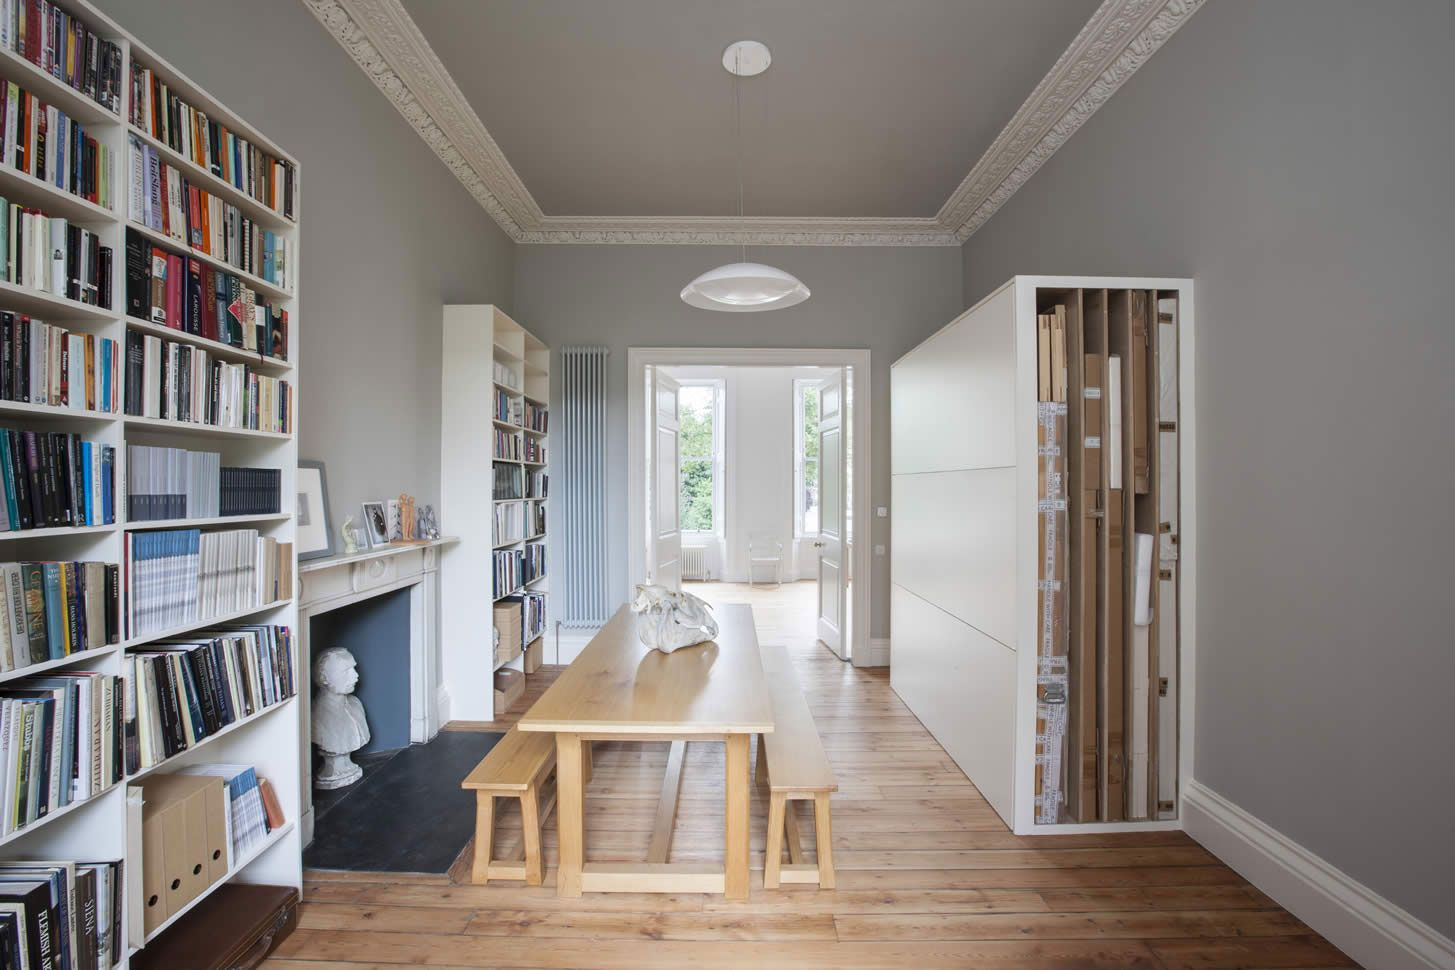 Townhouse in Edinburgh Remodeled by Sarah Lonsdale | Yellowtrace